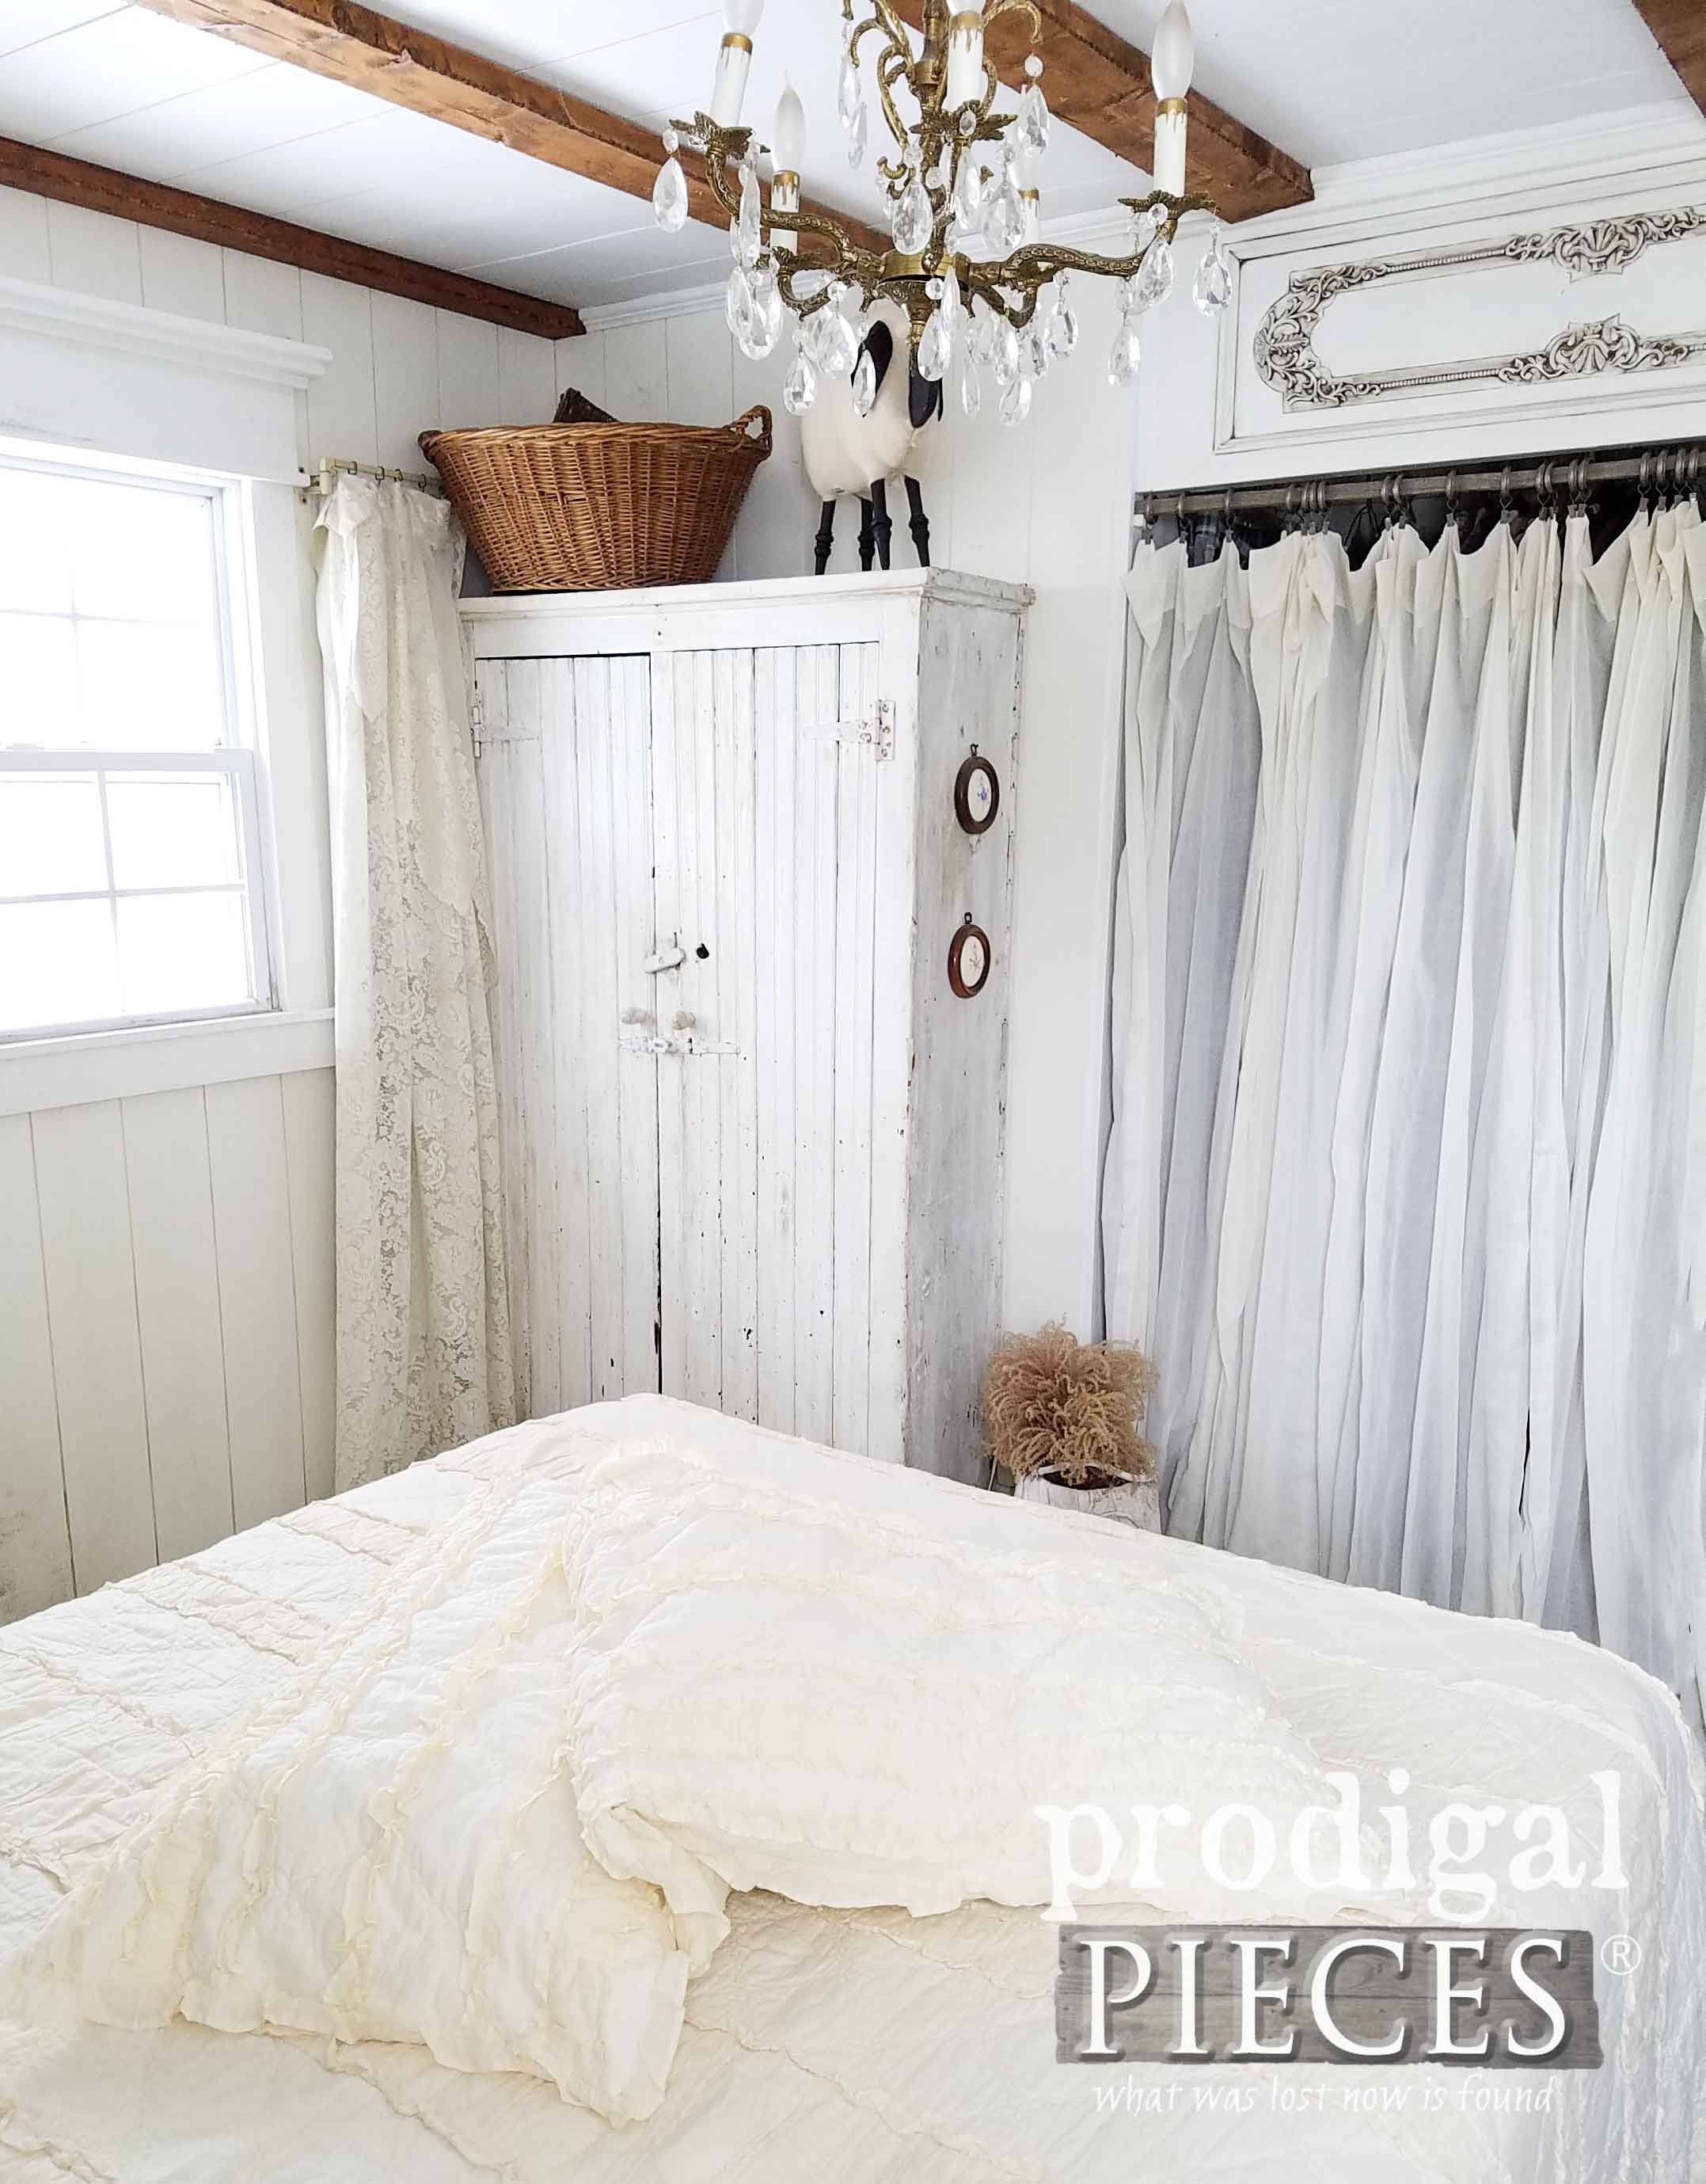 Primitive Chippy White Farmhouse Cupboard with Crystal Chandelier in Farmhouse Master Bedroom by Prodigal Pieces | prodigalpieces.com